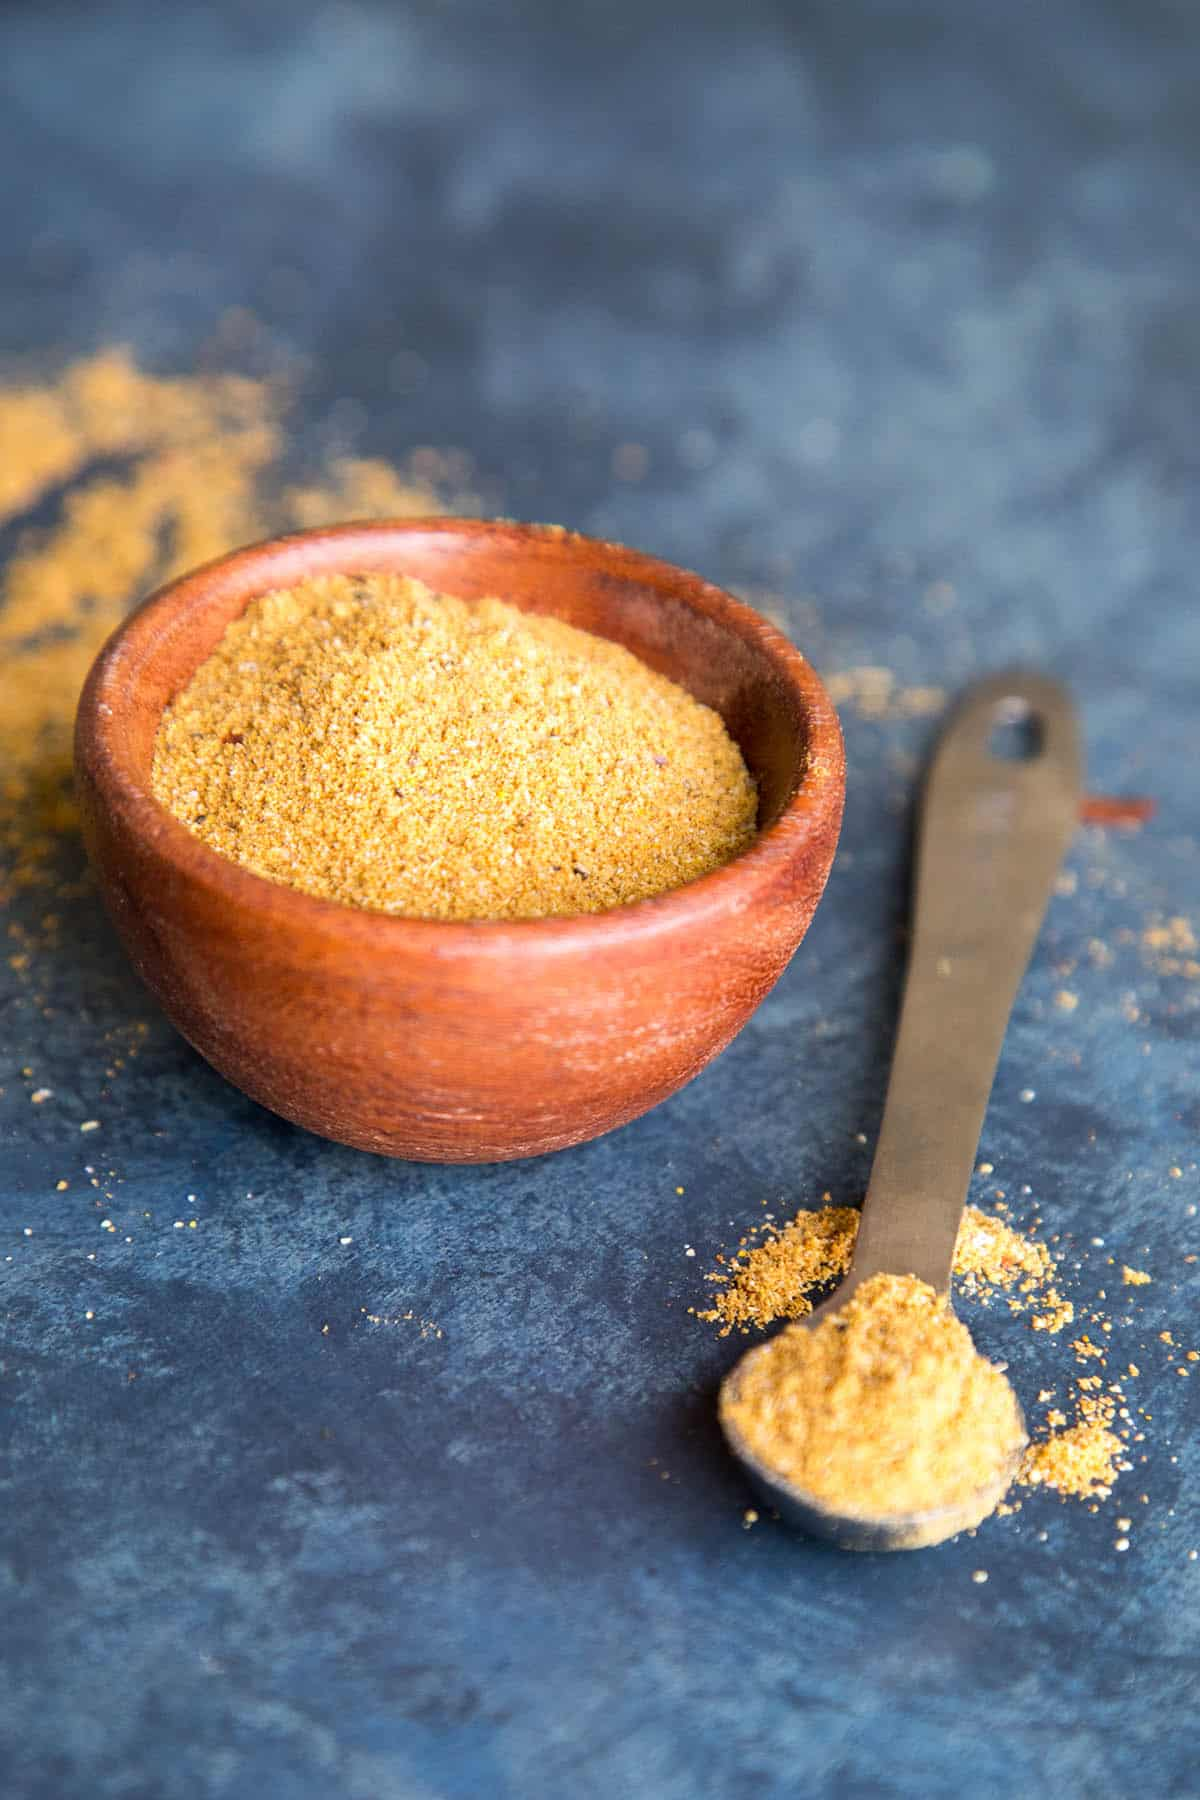 Vindaloo curry seasoning blend in a bowl and on a measuring spoon.